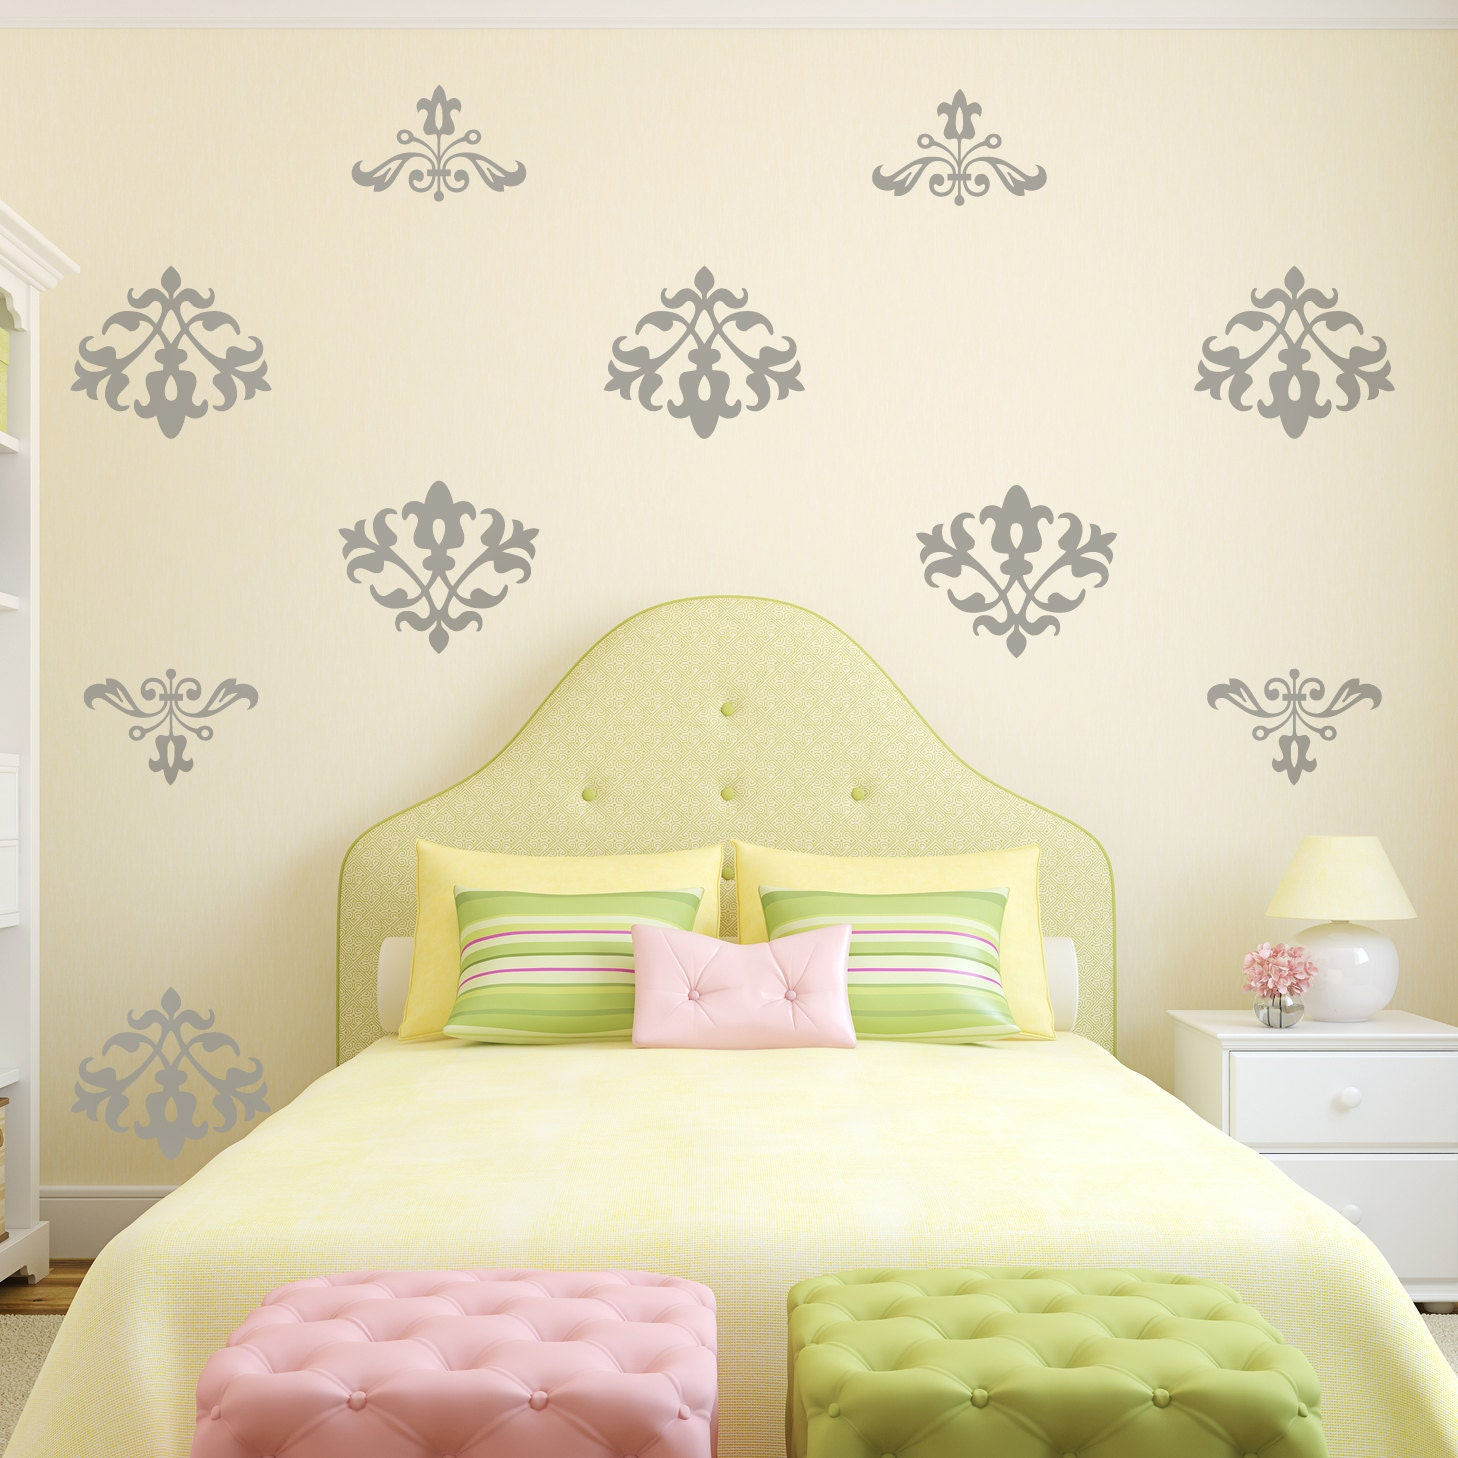 Floral Damask Vinyl Wall Decal Pattern Shabby Floral Flock